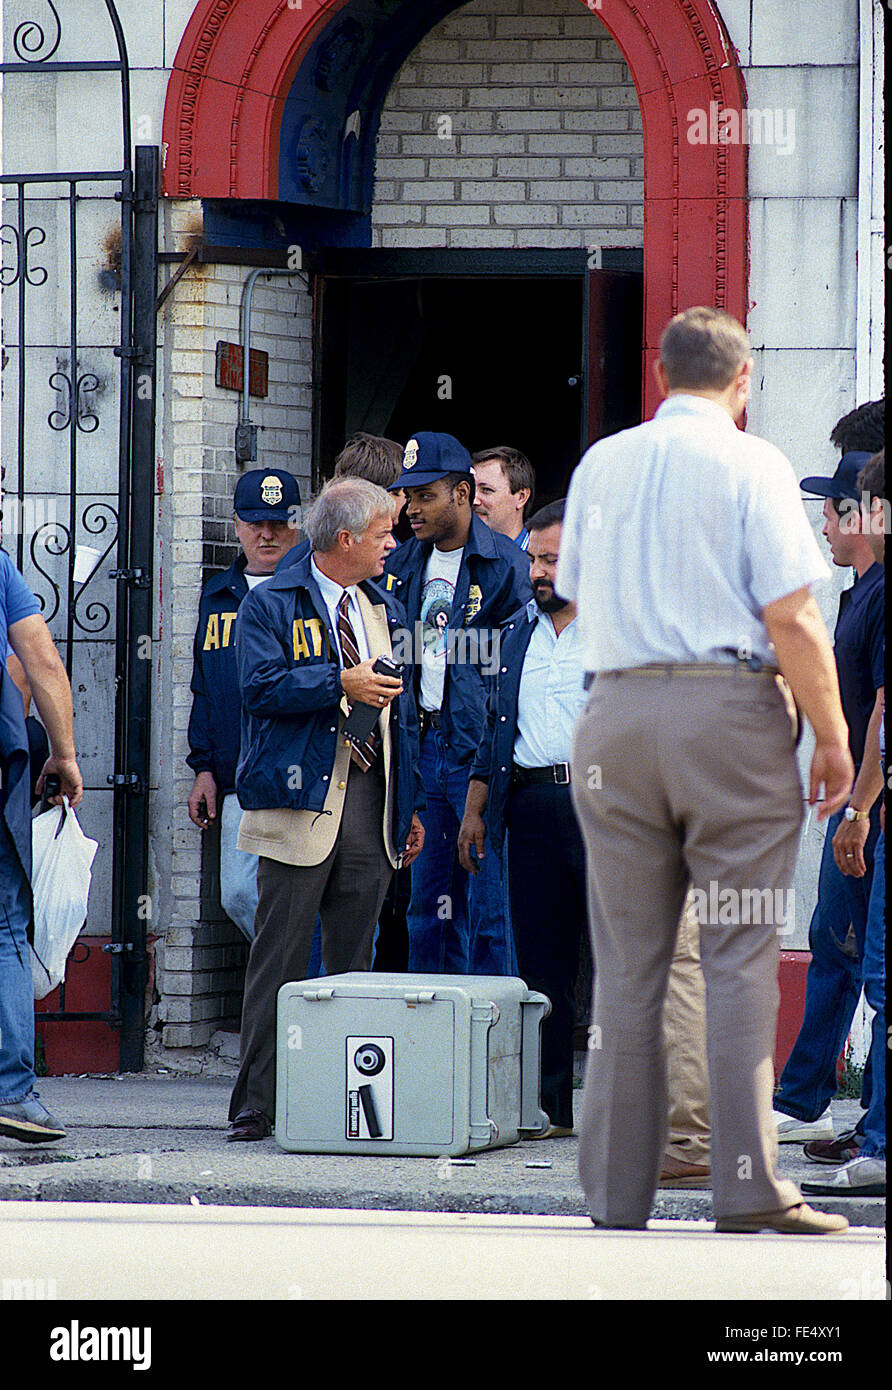 Chicago, Illinois, USA, 5th August,1986 Federal agents along with Chicago Police raid the headquarters Temple building - Stock Image